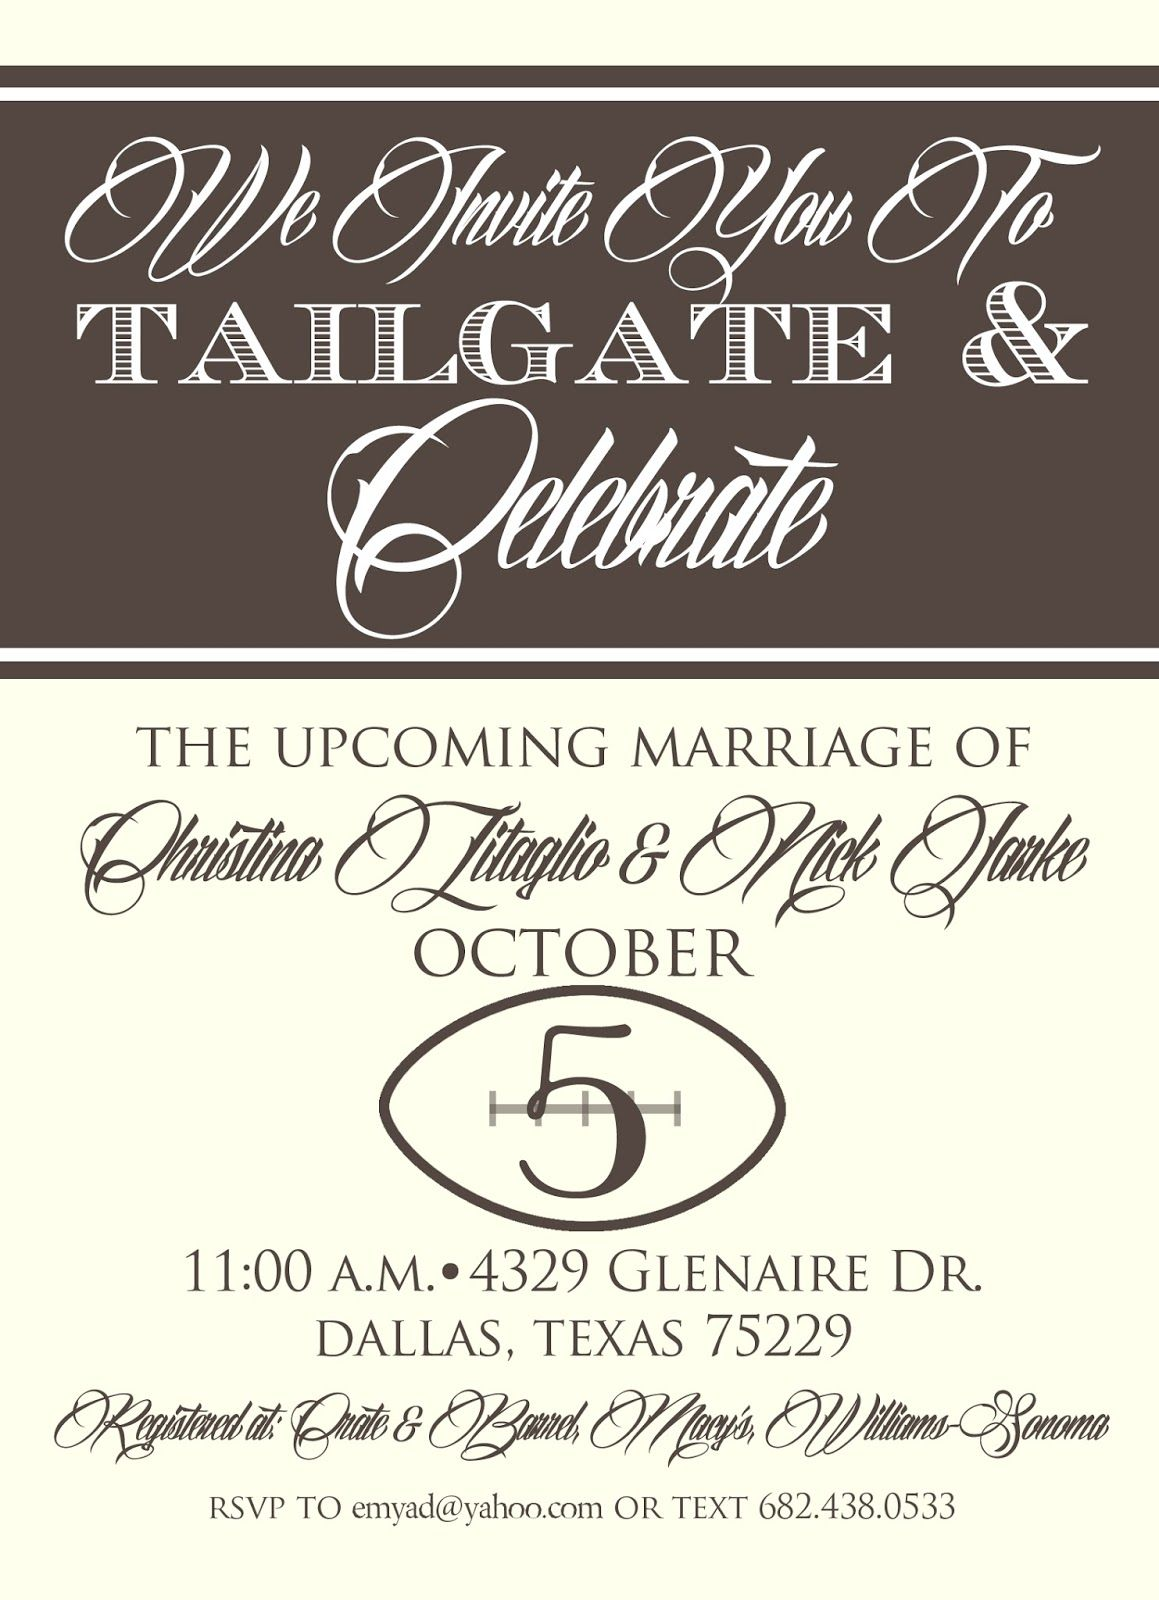 couture bridal shower | Brown Paper Couture: Tailgate wedding shower ...